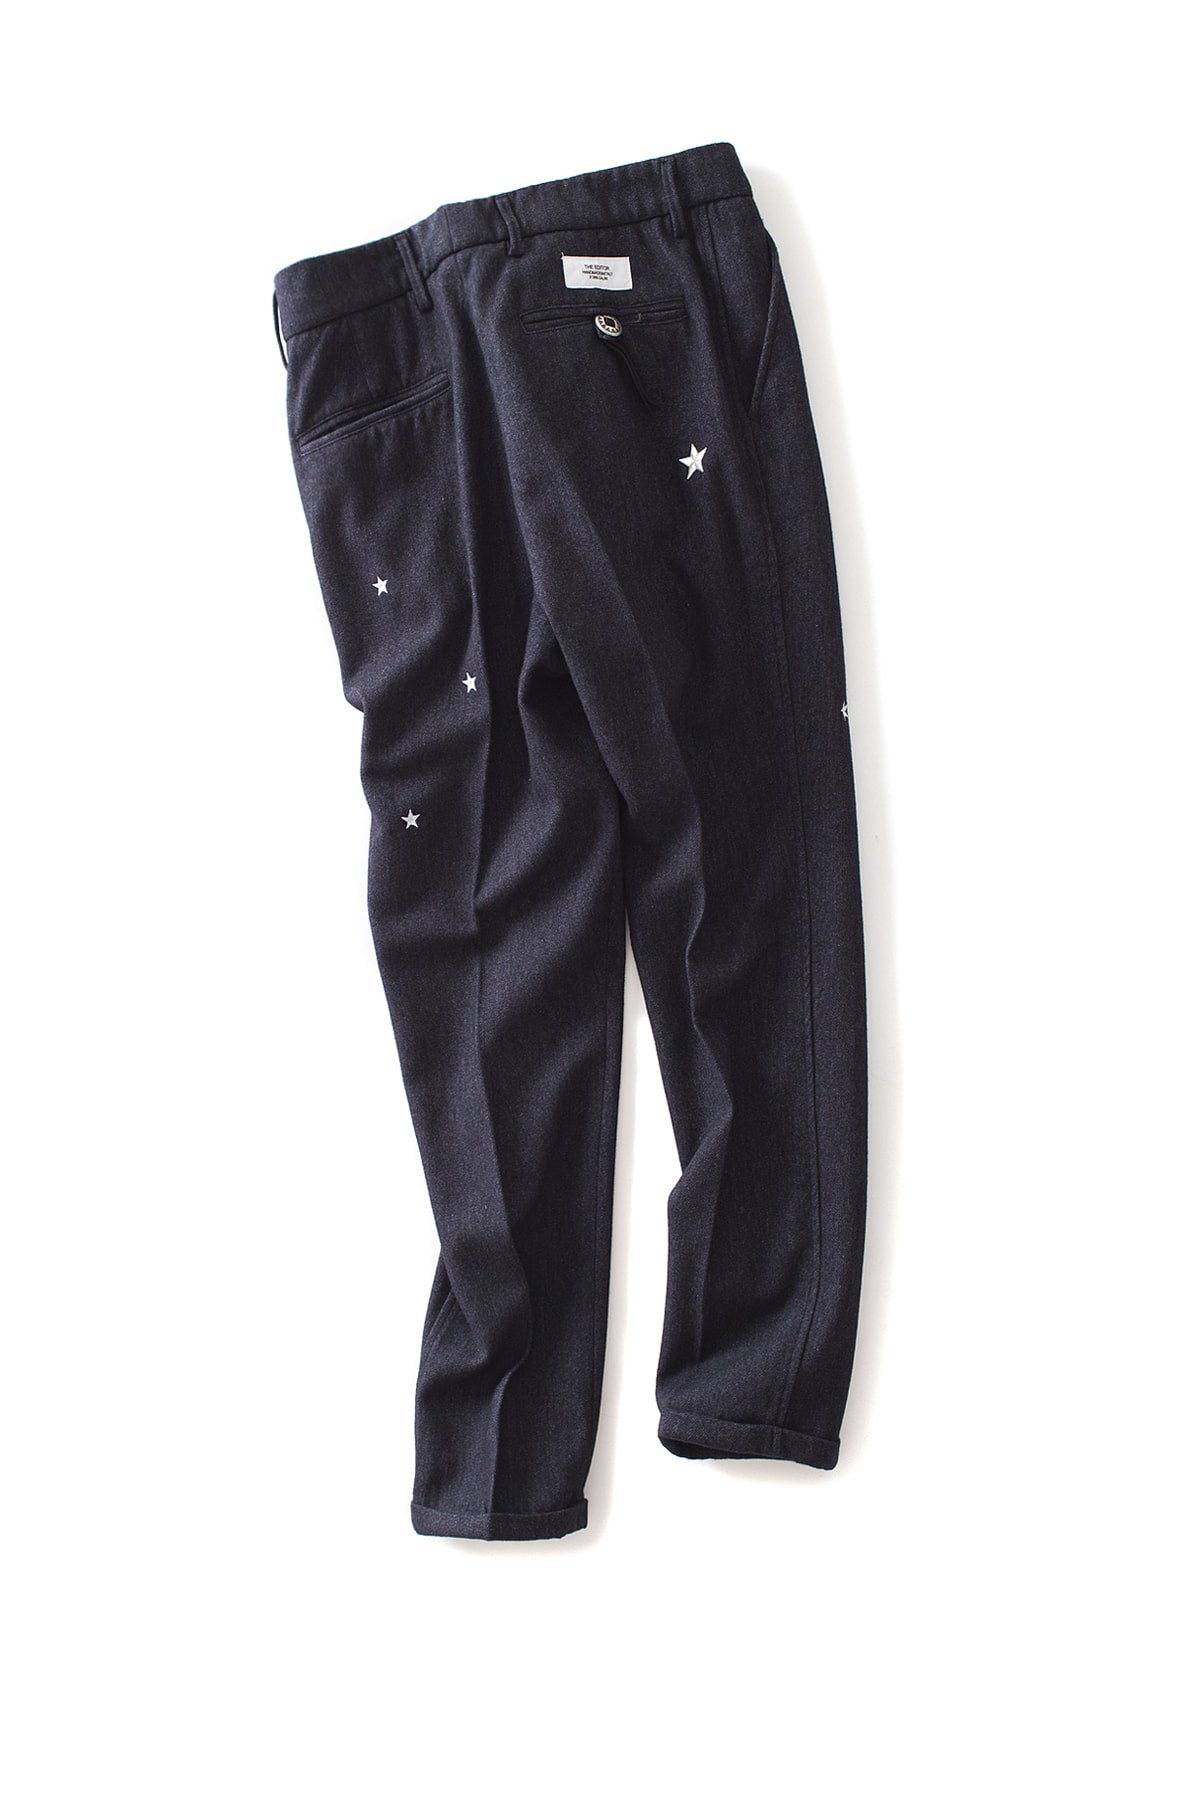 THE EDITOR : Star Embroidered Trouser (Charcoal)